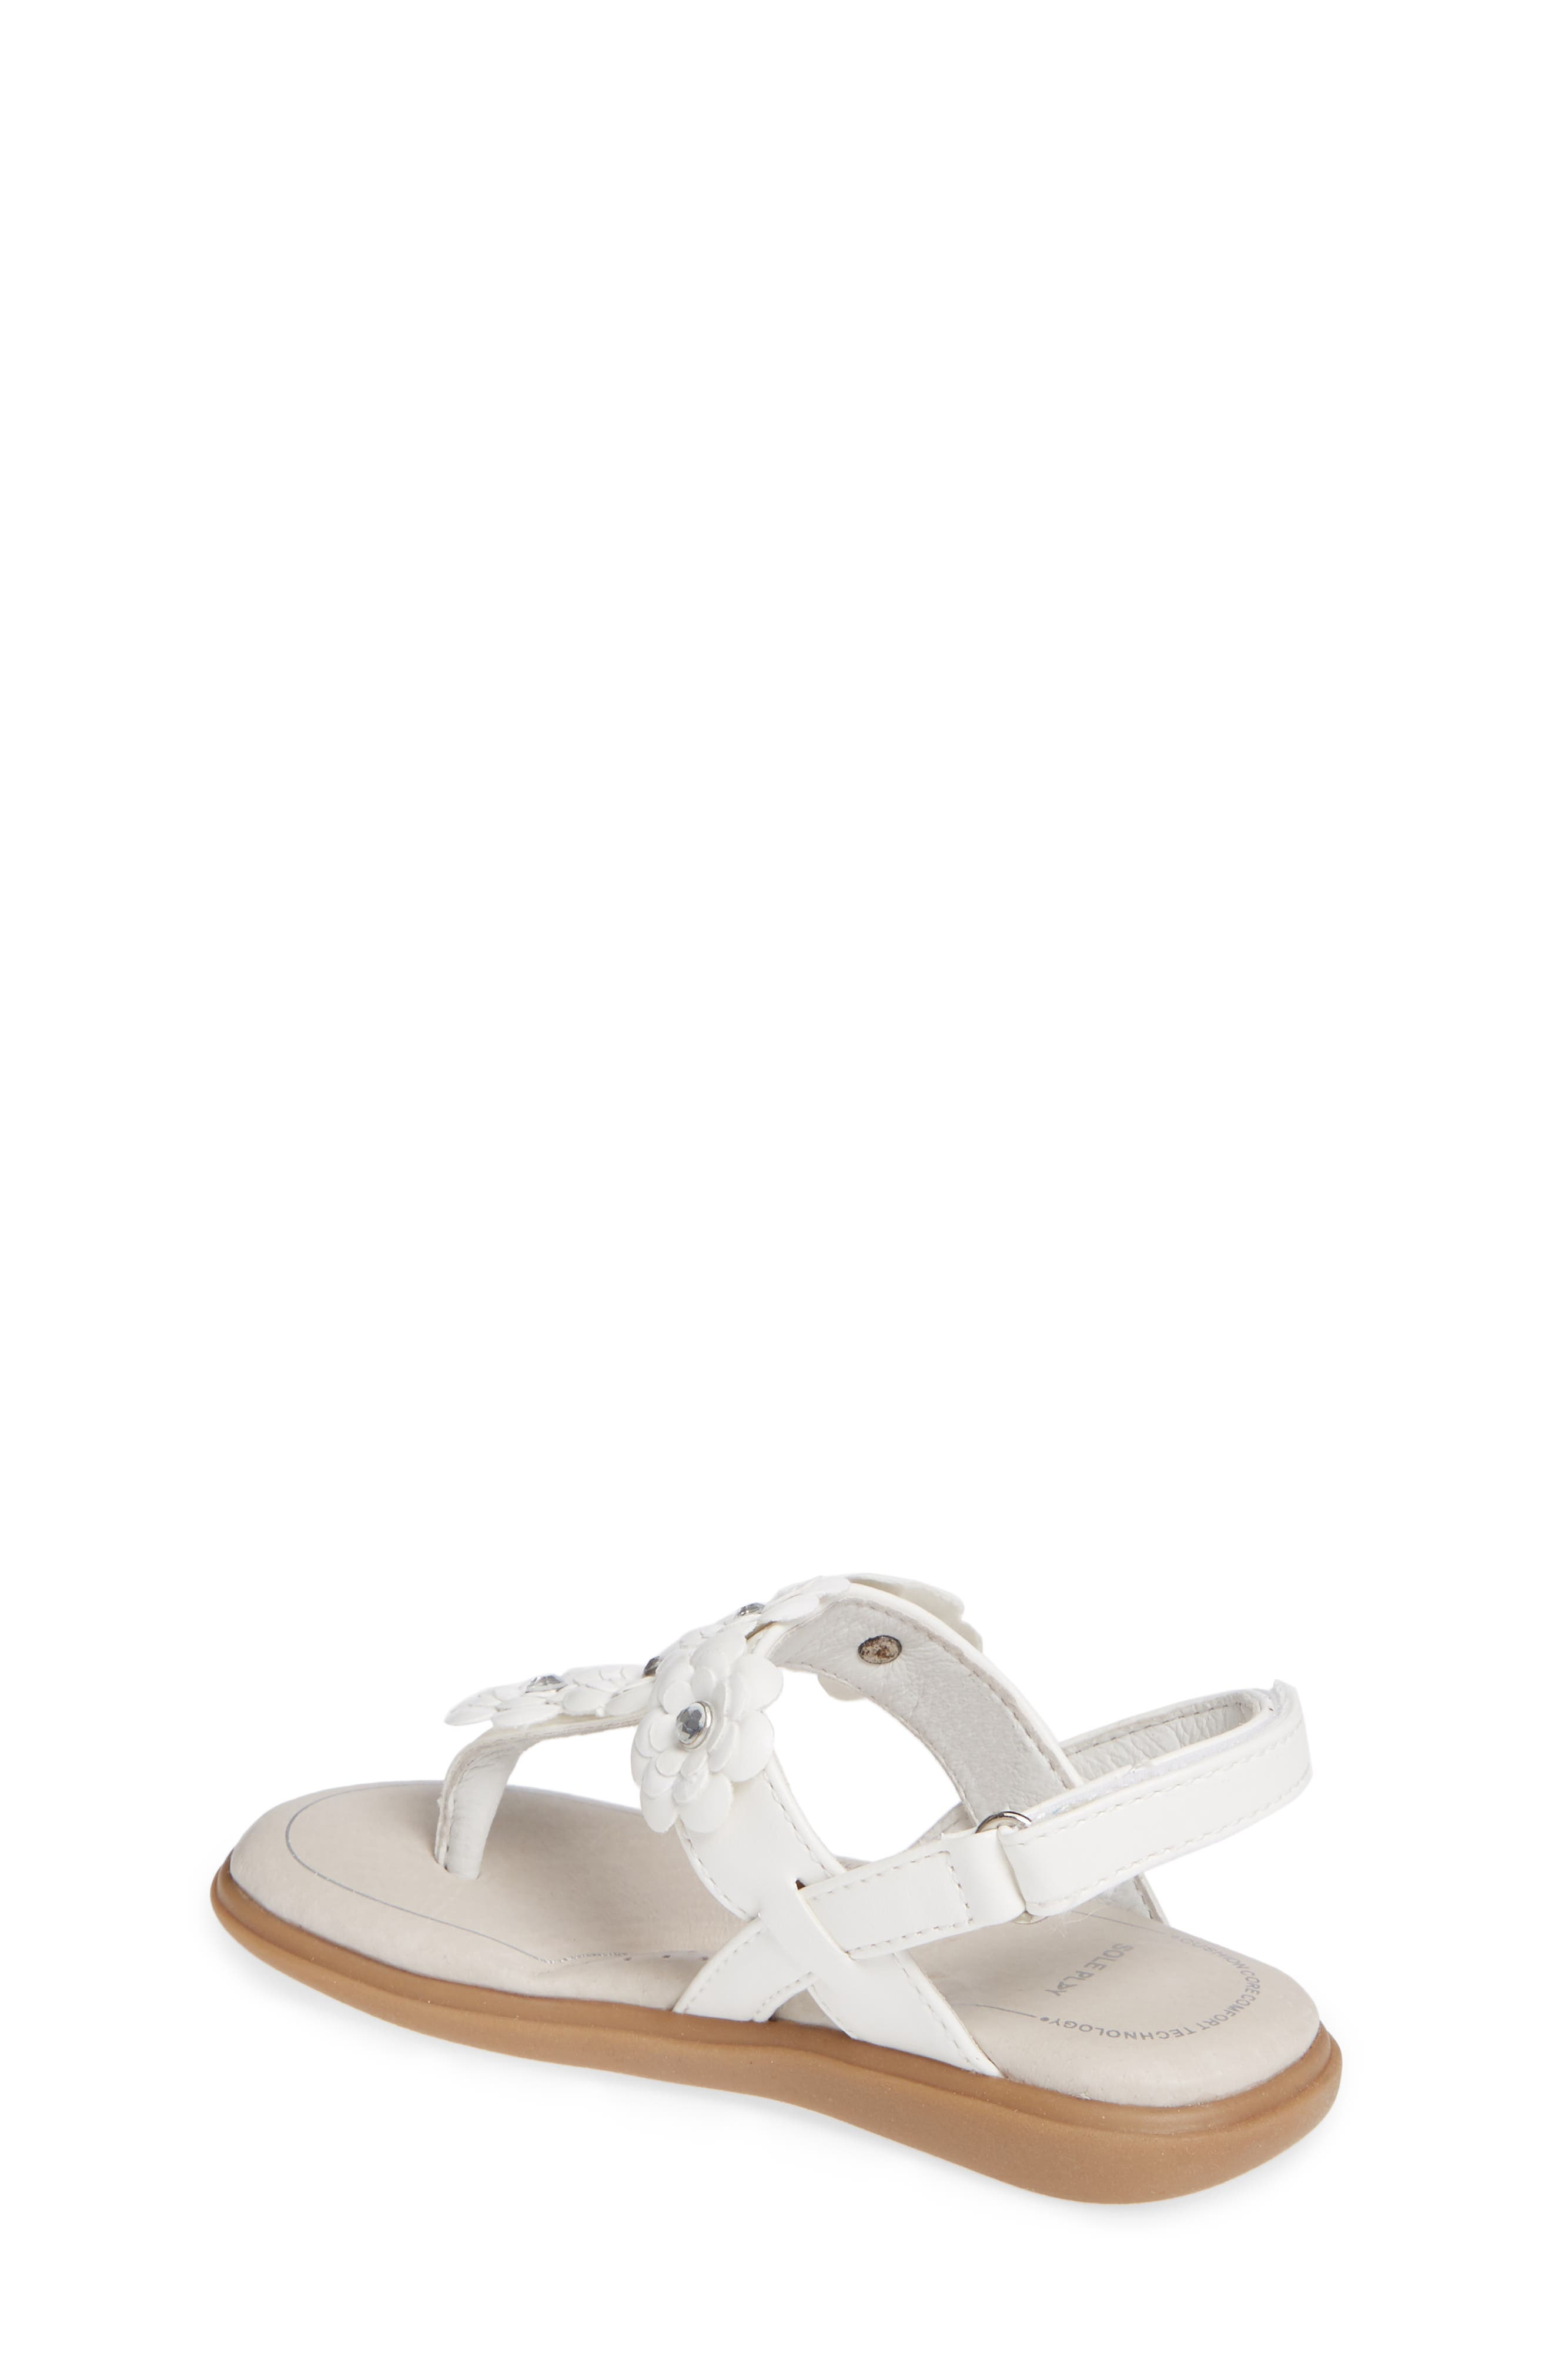 SOLE PLAY, Cora Floral Embellished Sandal, Alternate thumbnail 2, color, WHITE